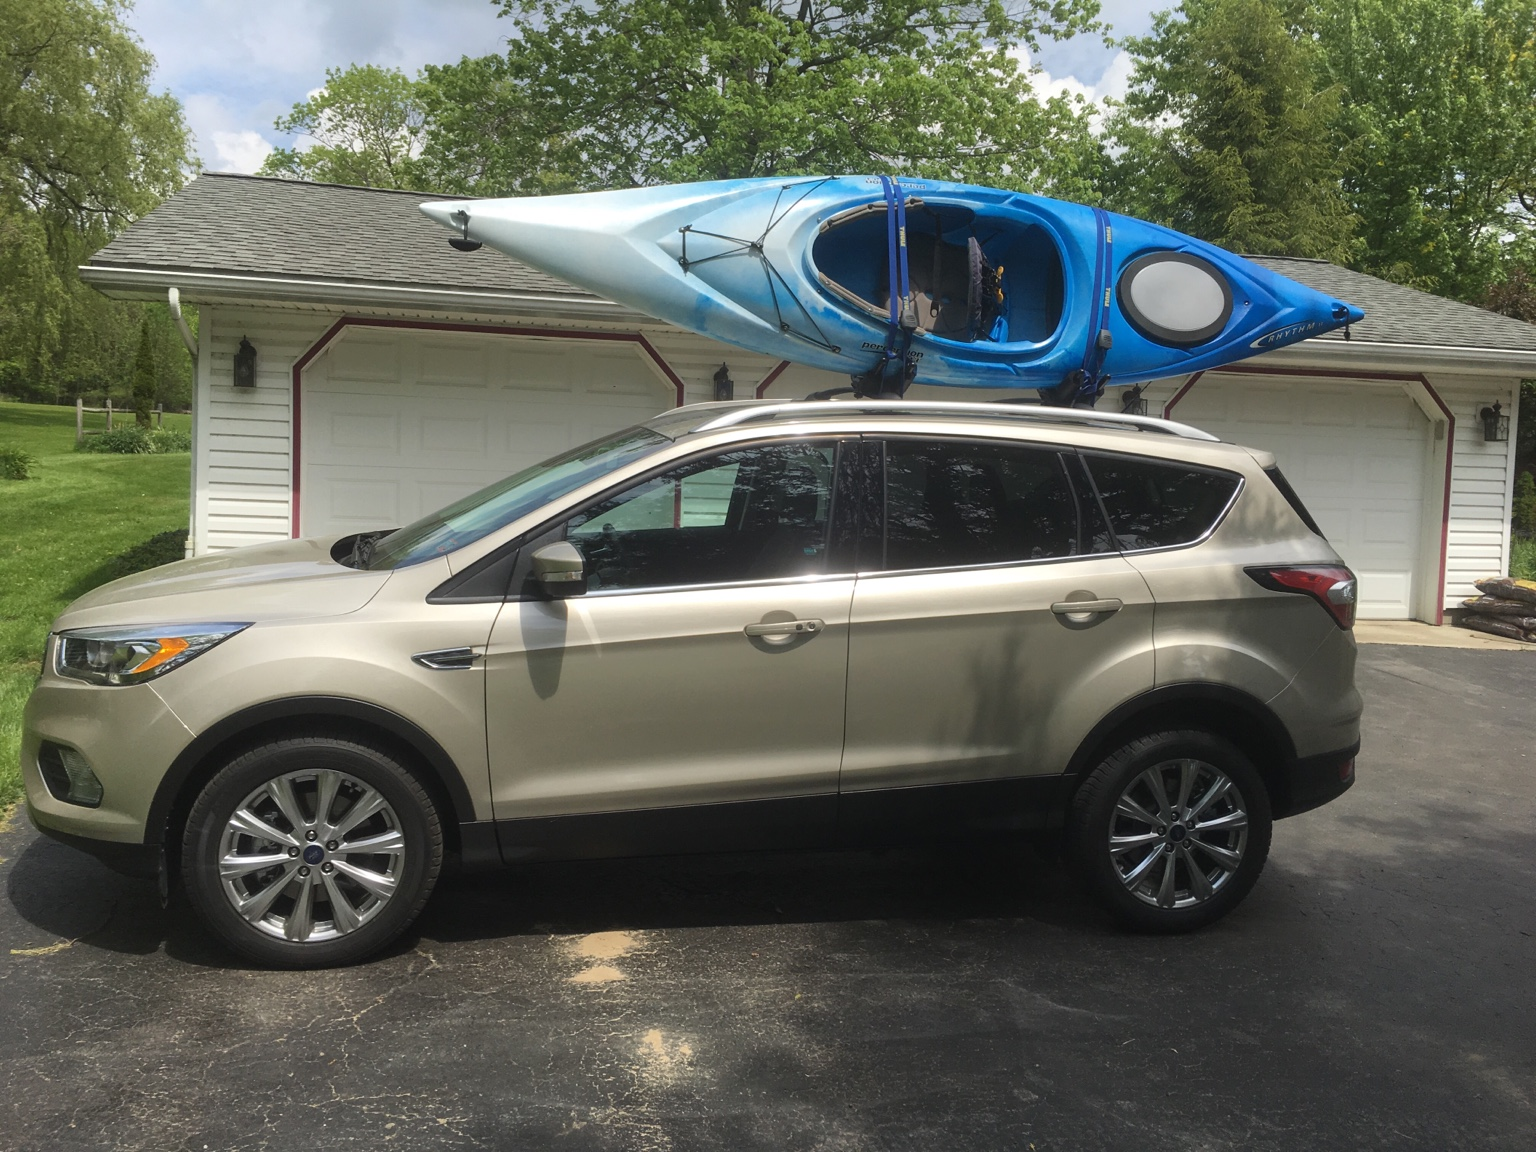 ... White Gold Escape - 2013 / 2014 / 2015 / 2020 / 2020 Ford Escape Forum